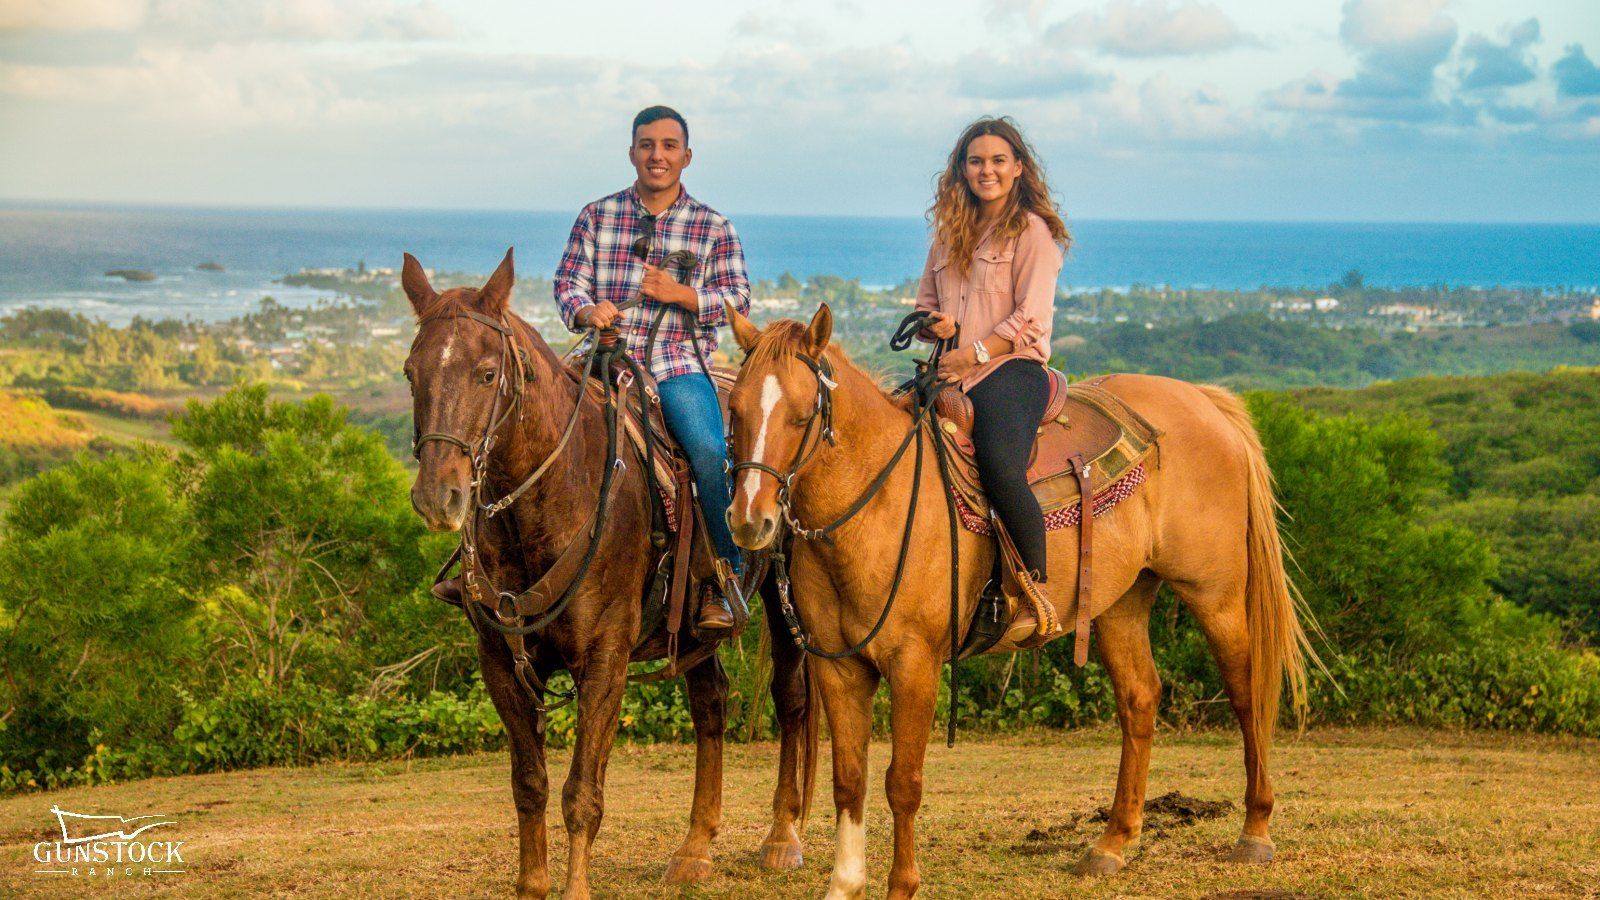 Couple riding horses at sunset in Hawaii